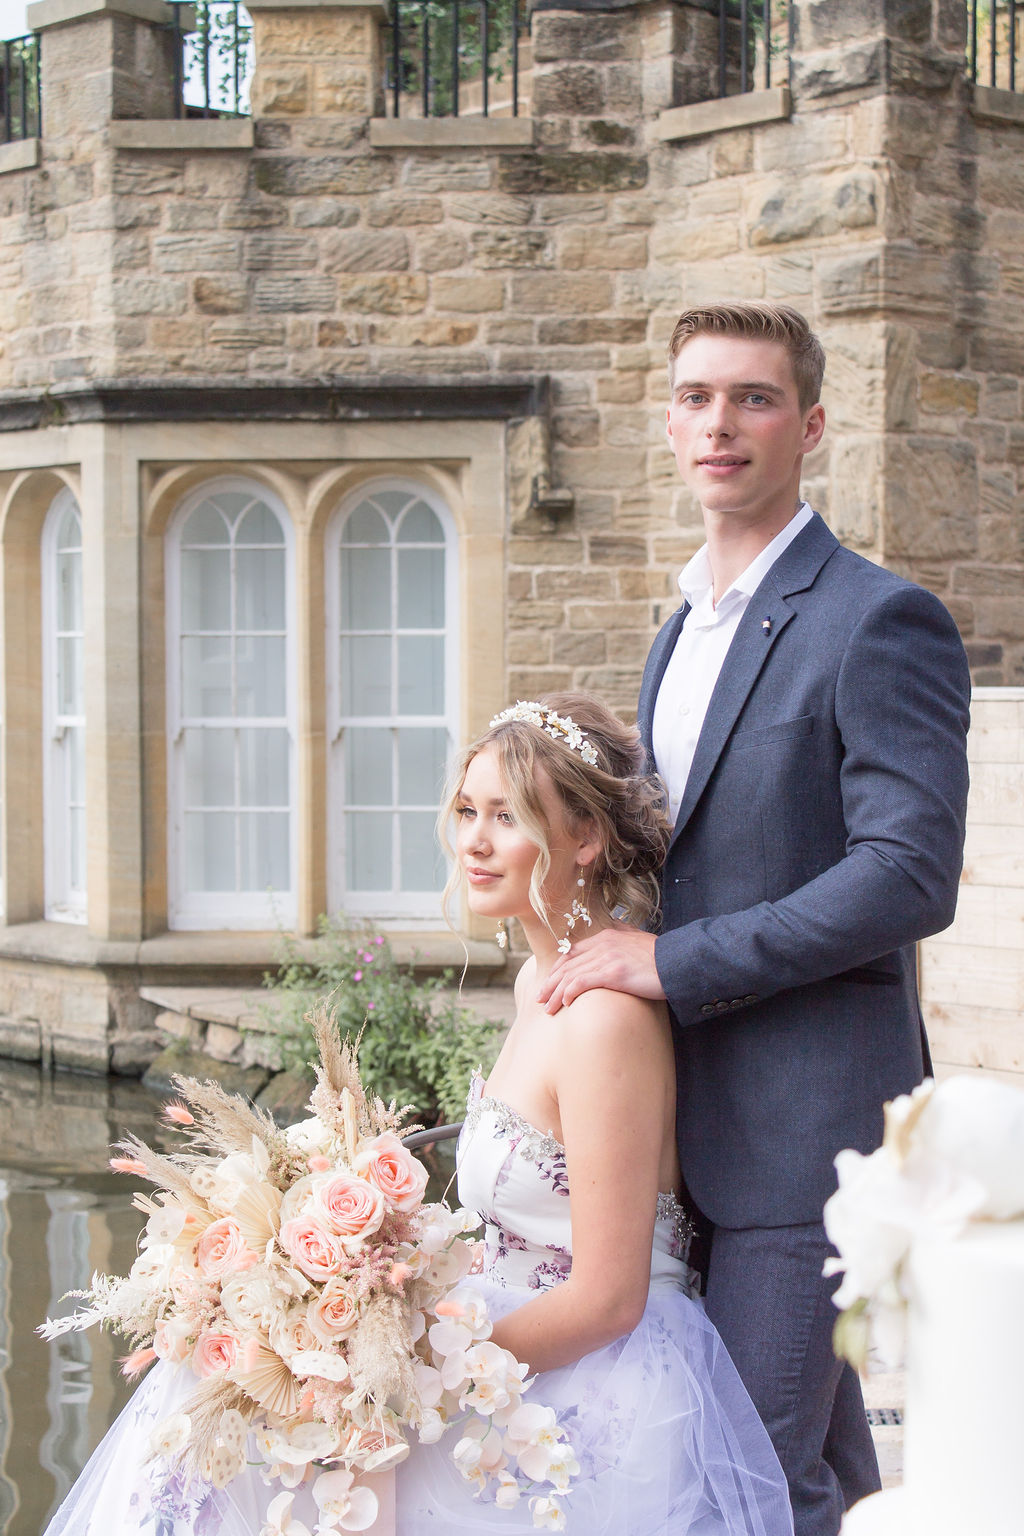 Dreamy Blush Wedding With Bespoke Floral Dress at Newmillerdam Yorkshire